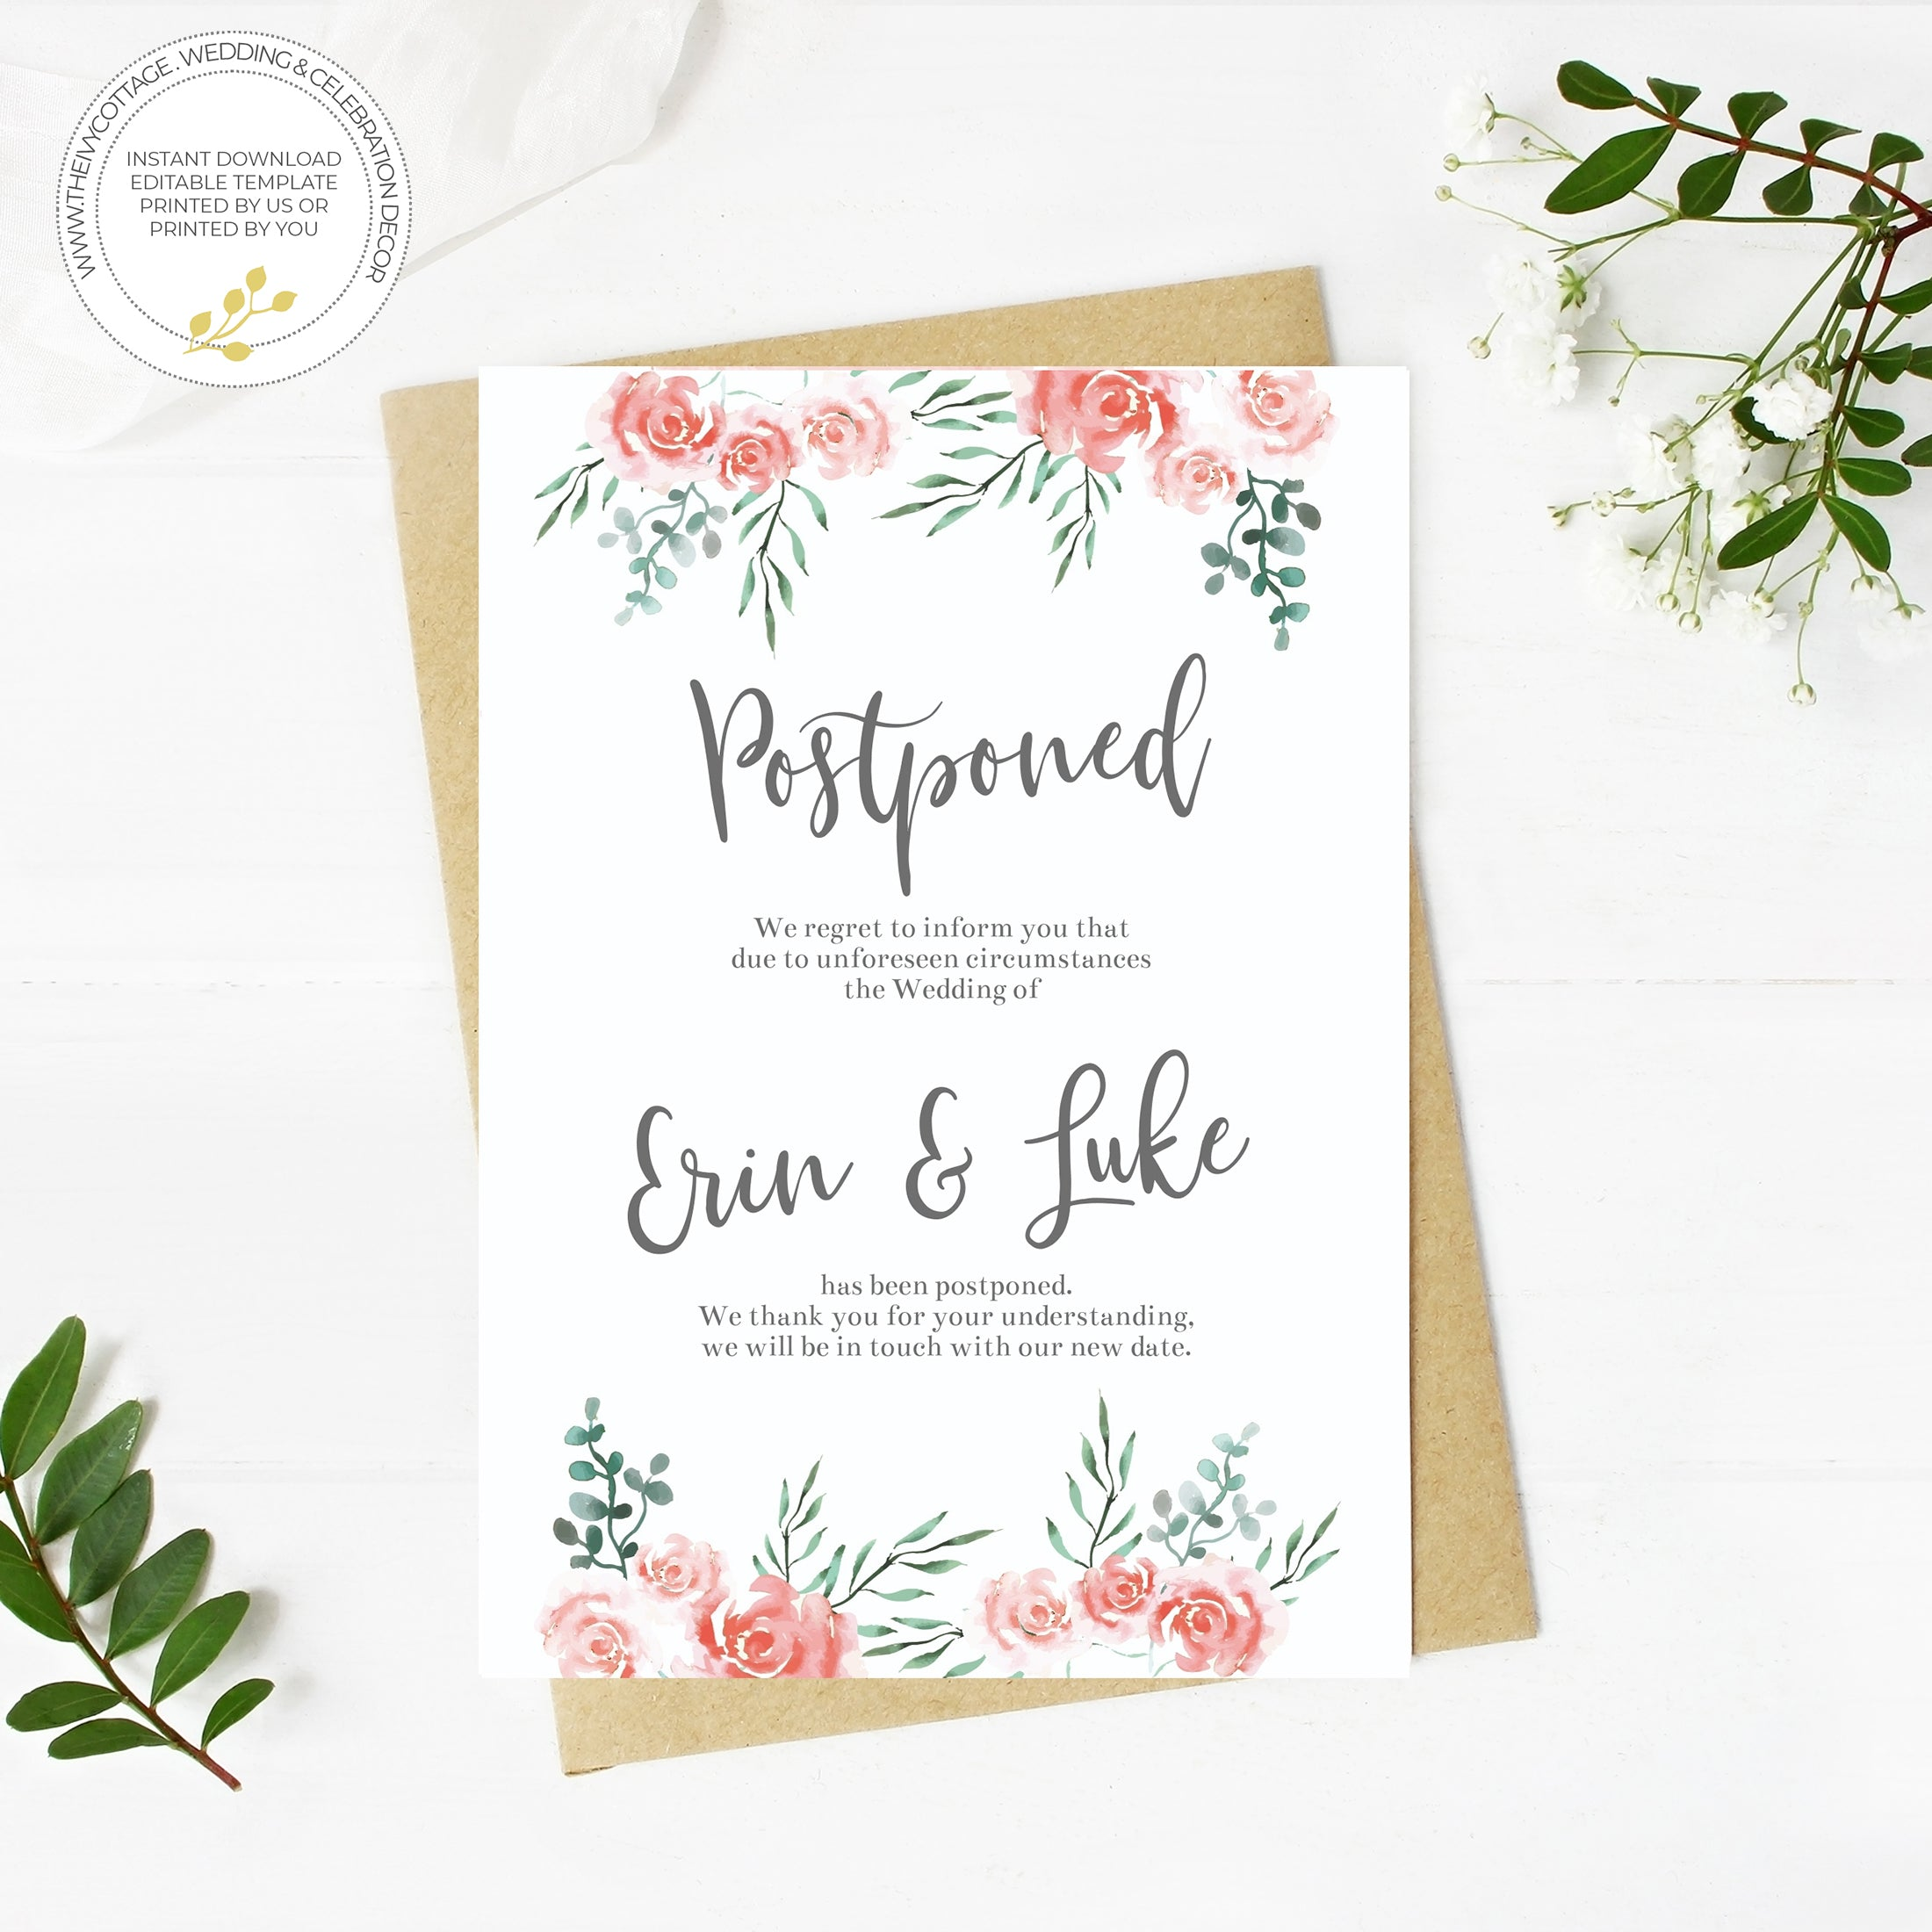 It is a picture of Printable Wedding Card in greeting